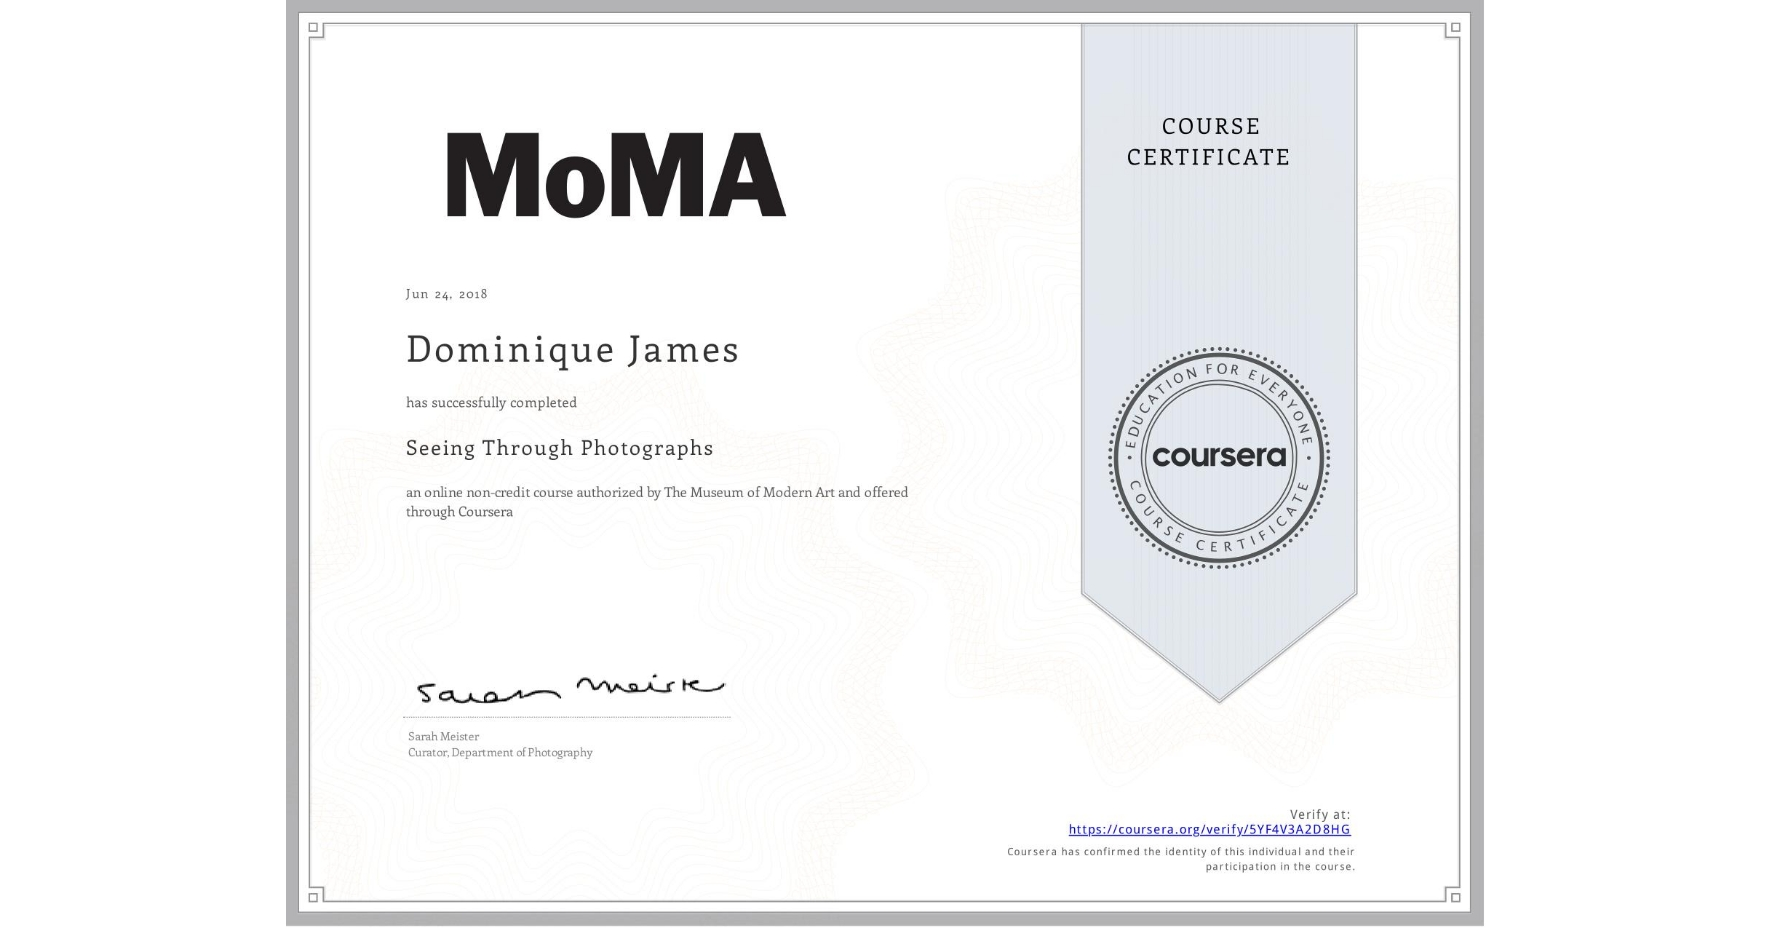 View certificate for Dominique James, Seeing Through Photographs, an online non-credit course authorized by The Museum of Modern Art and offered through Coursera